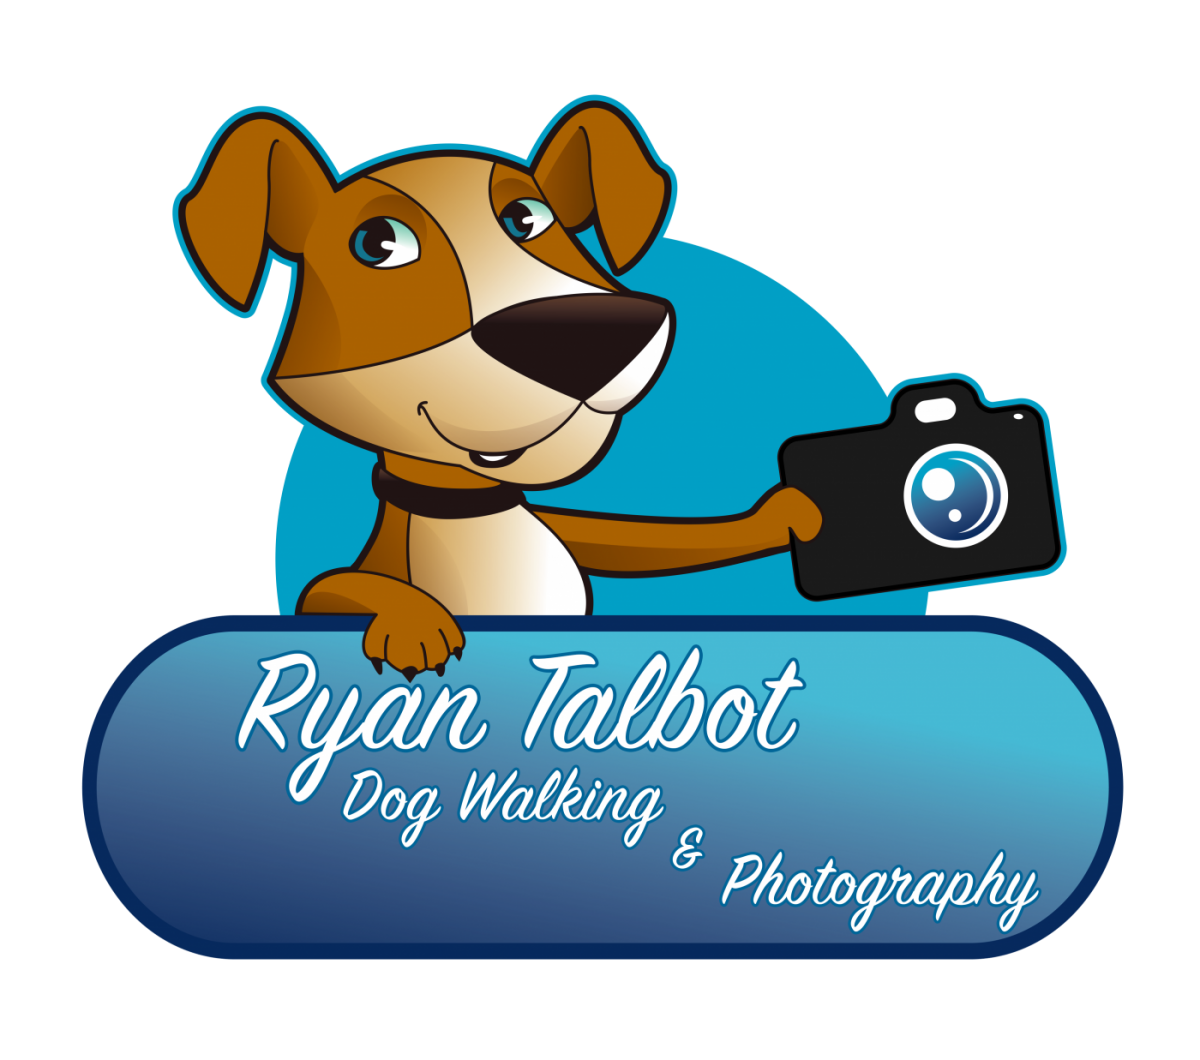 Pet clipart home pet. Dog walking sitting services